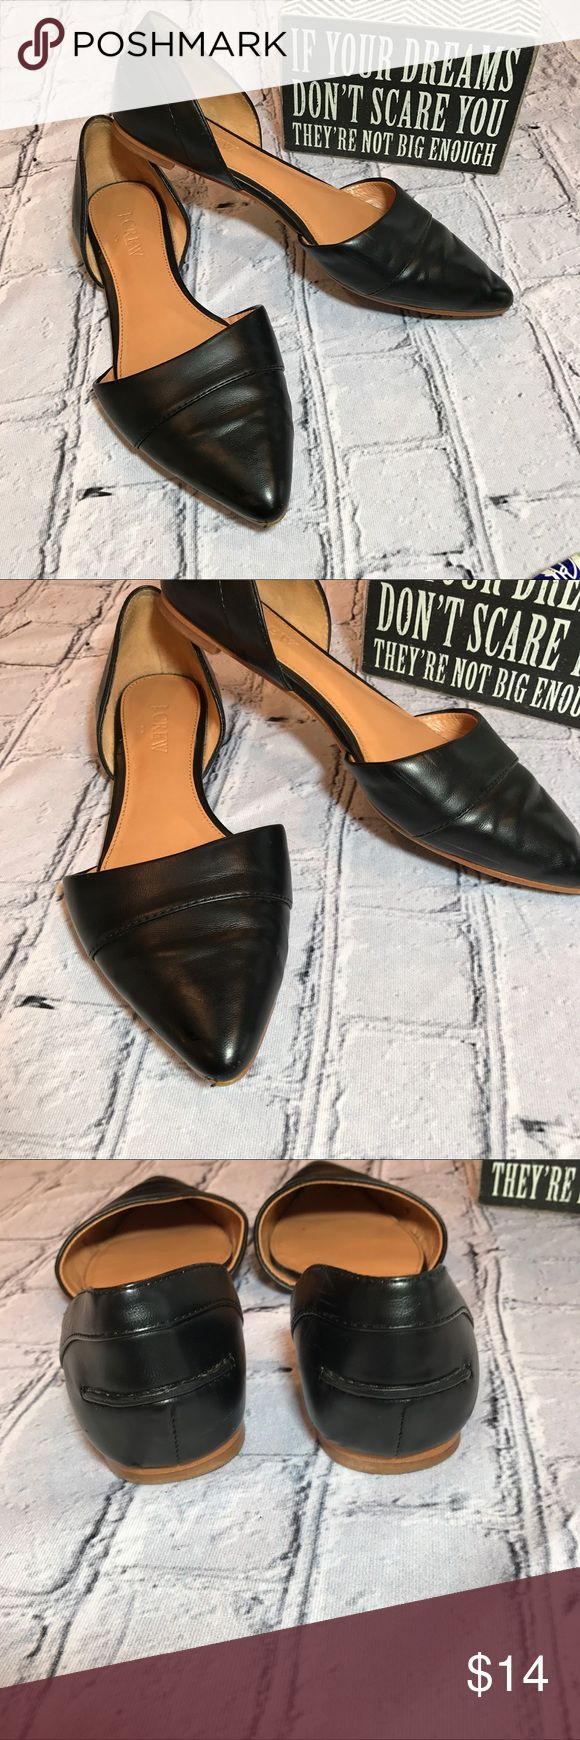 J.Crew black leather flats Black leather J.crew flats. Size 6 Great condition. Cute and stylish bin 11 J.Crew Shoes Flats & Loafers